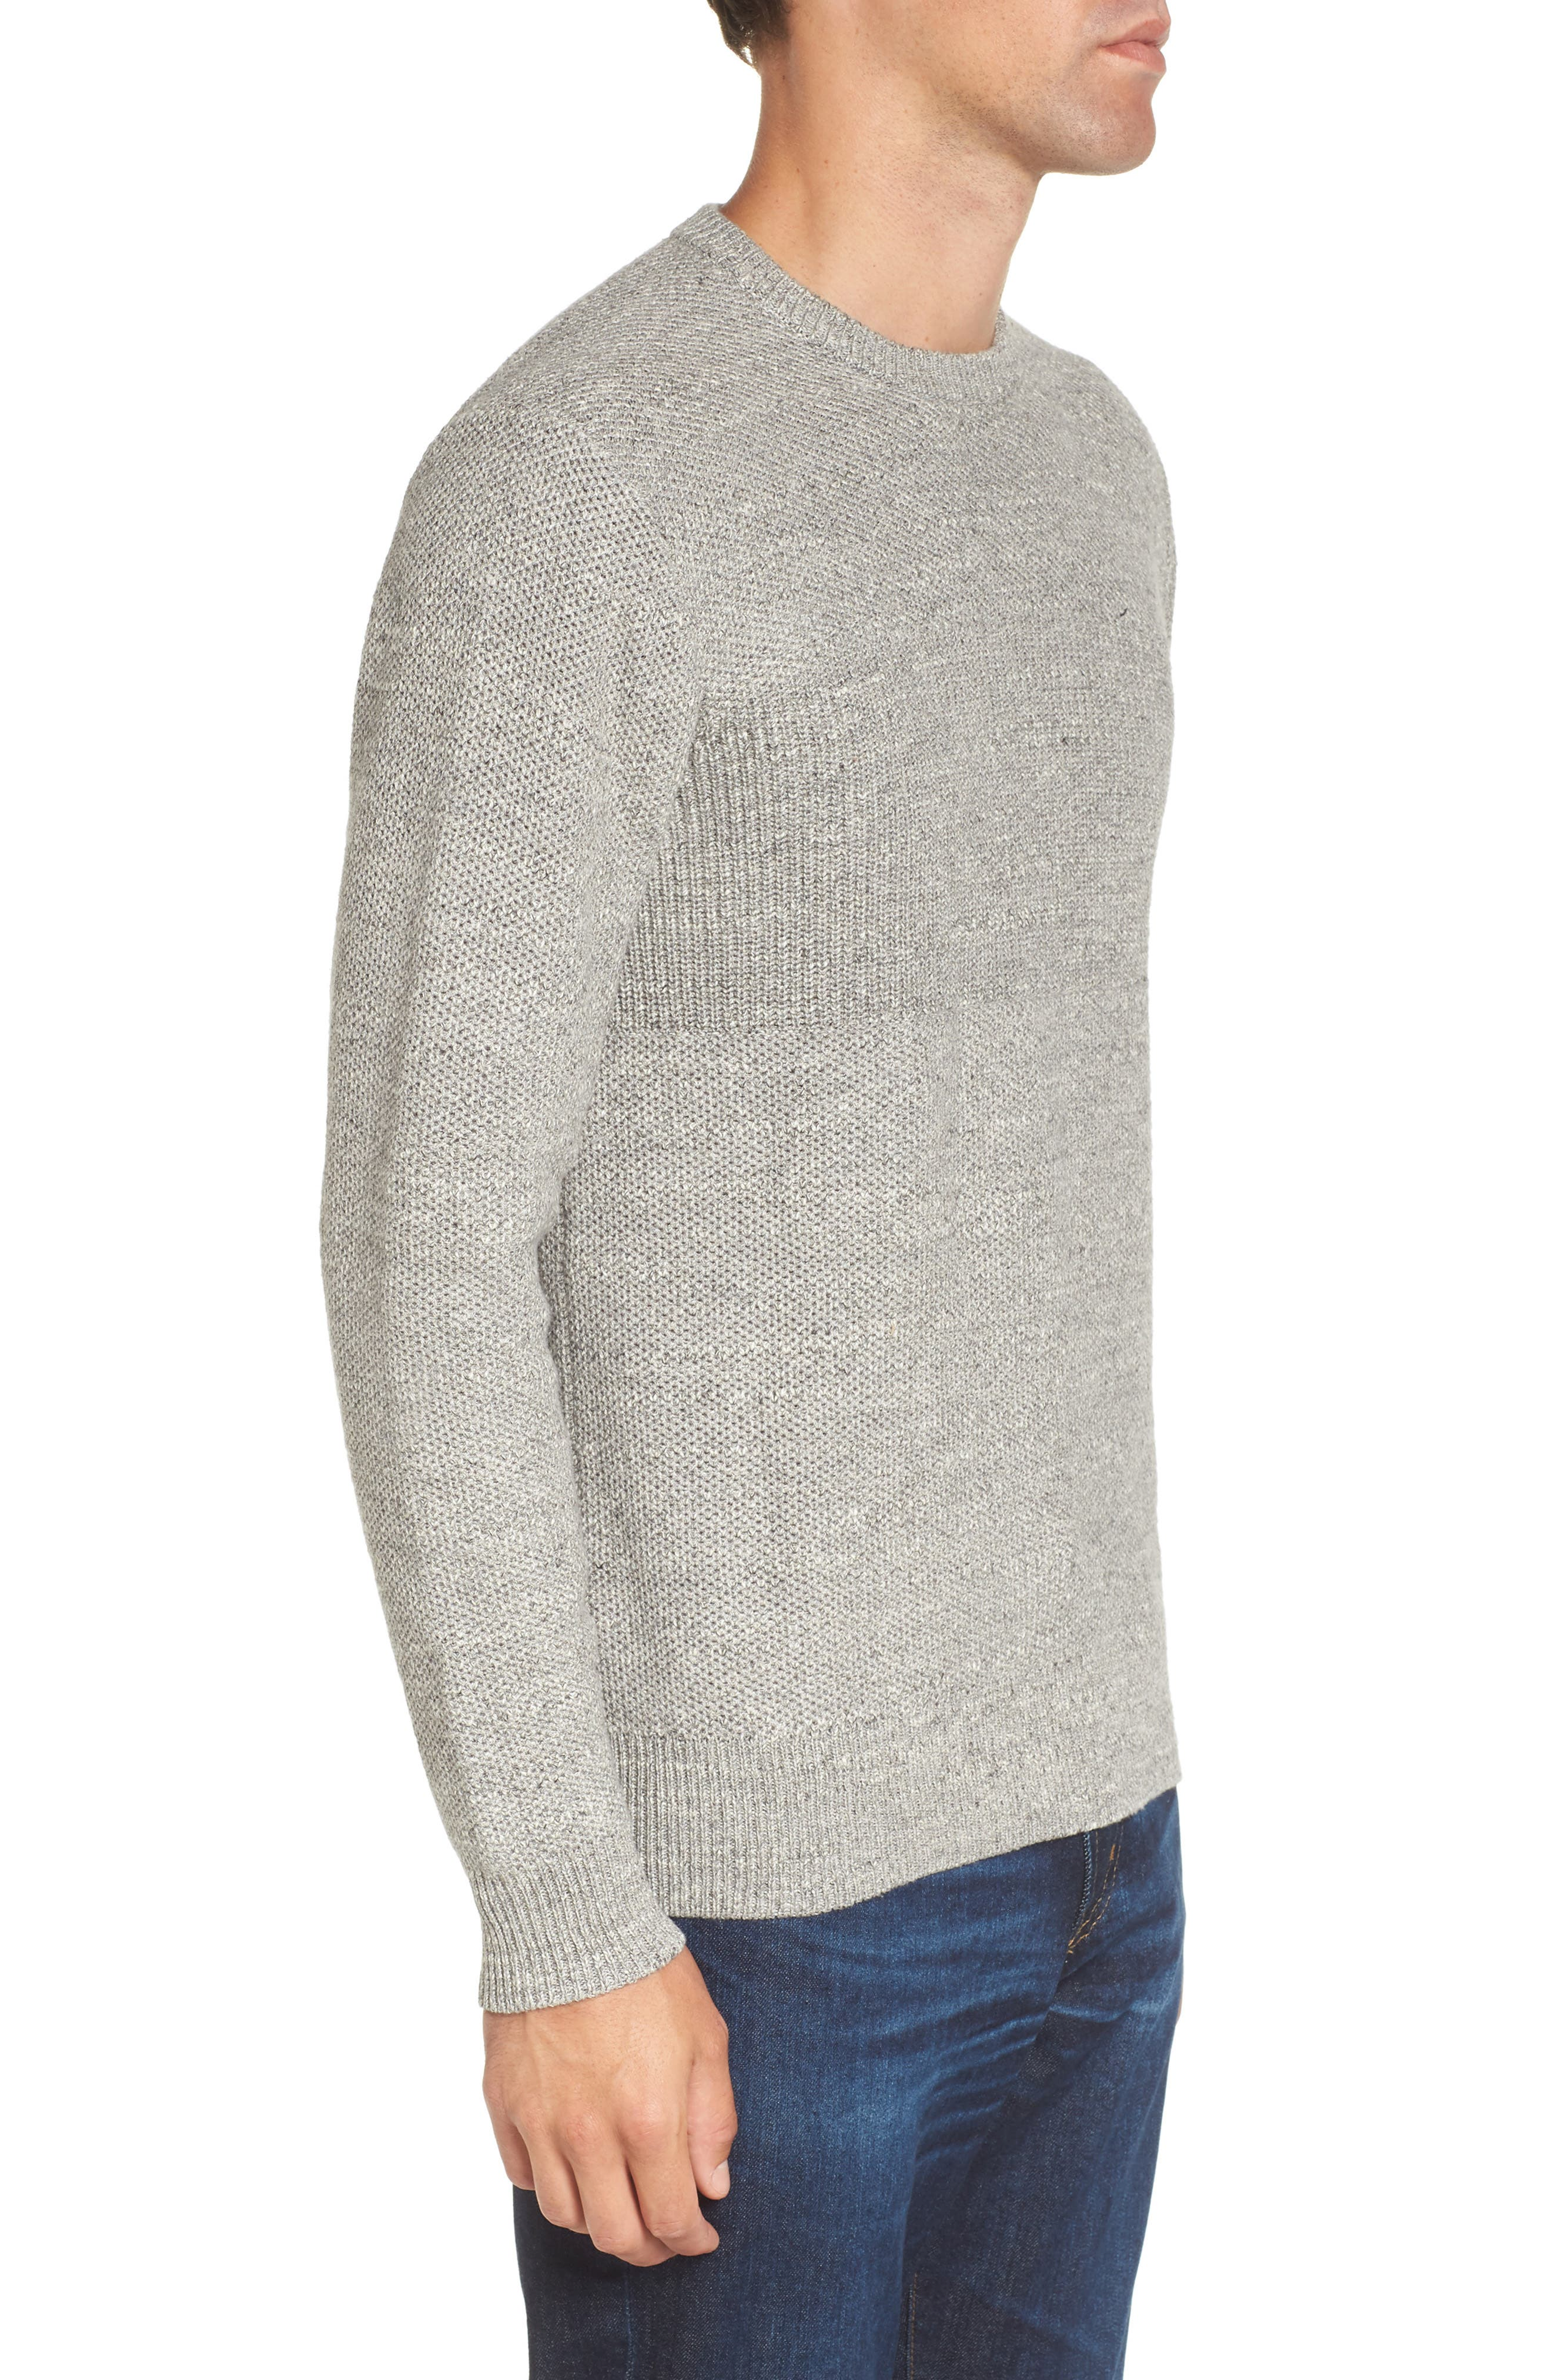 Ardsley Textured Sweater,                             Alternate thumbnail 3, color,                             Grey Heather